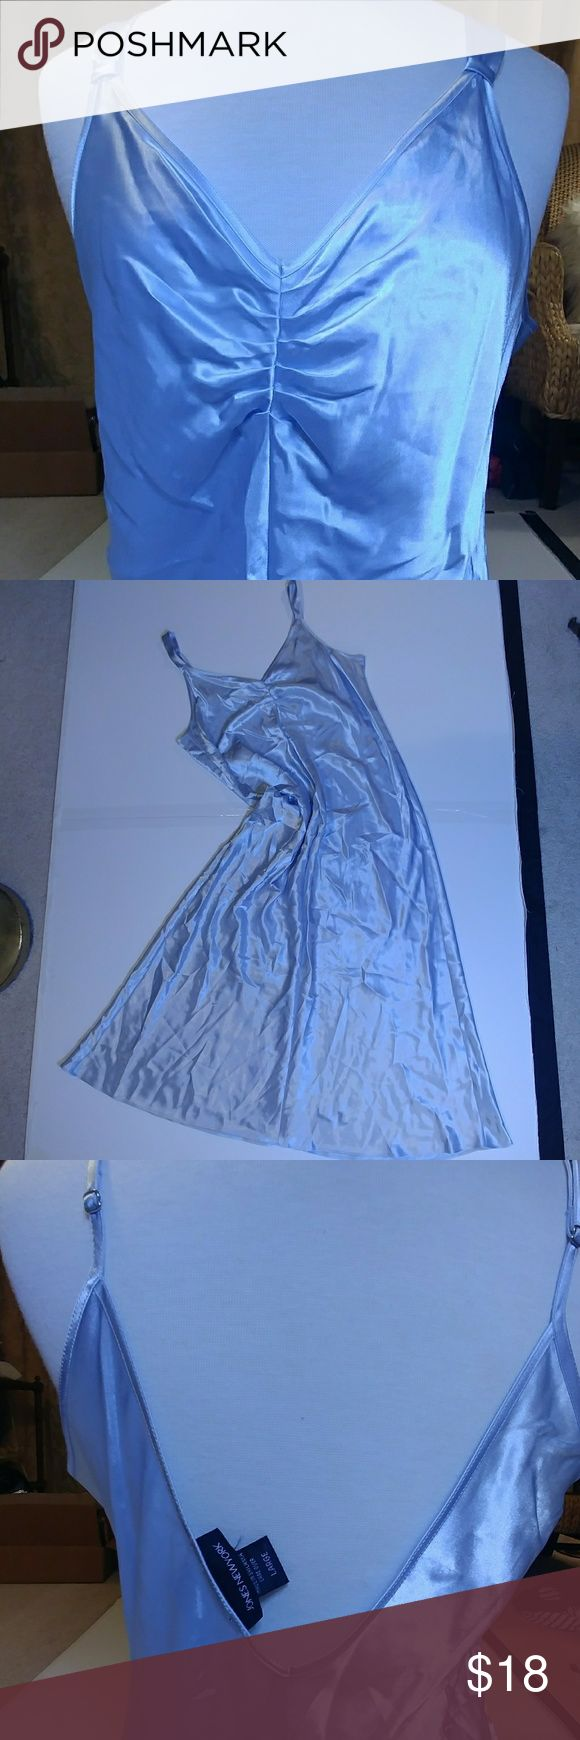 satin night gown, light bue NWOT, it had a tag and I cut it off by mistake. This was a 2 piece set, I don't have the robe. Pretty for sleeping or if you're like my girls, toss a chunky sweater over, add boots and go! Non smoking home. Jones New York Intimates & Sleepwear Chemises & Slips